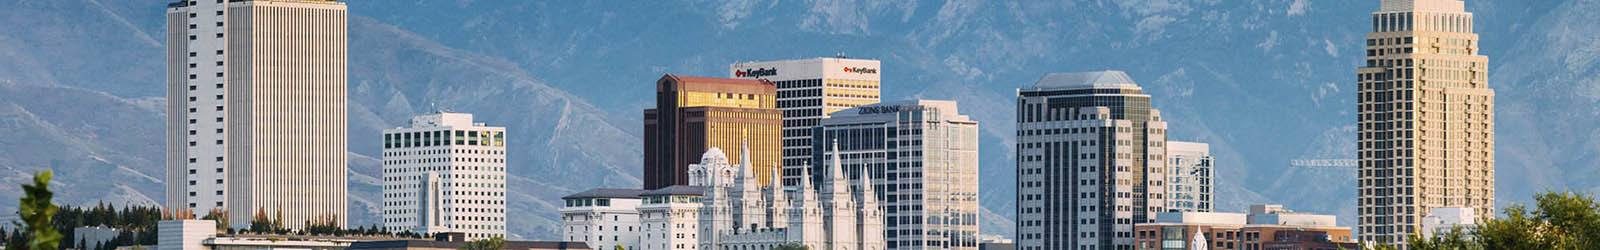 Salt Lake City apartments have wonderful community amenities